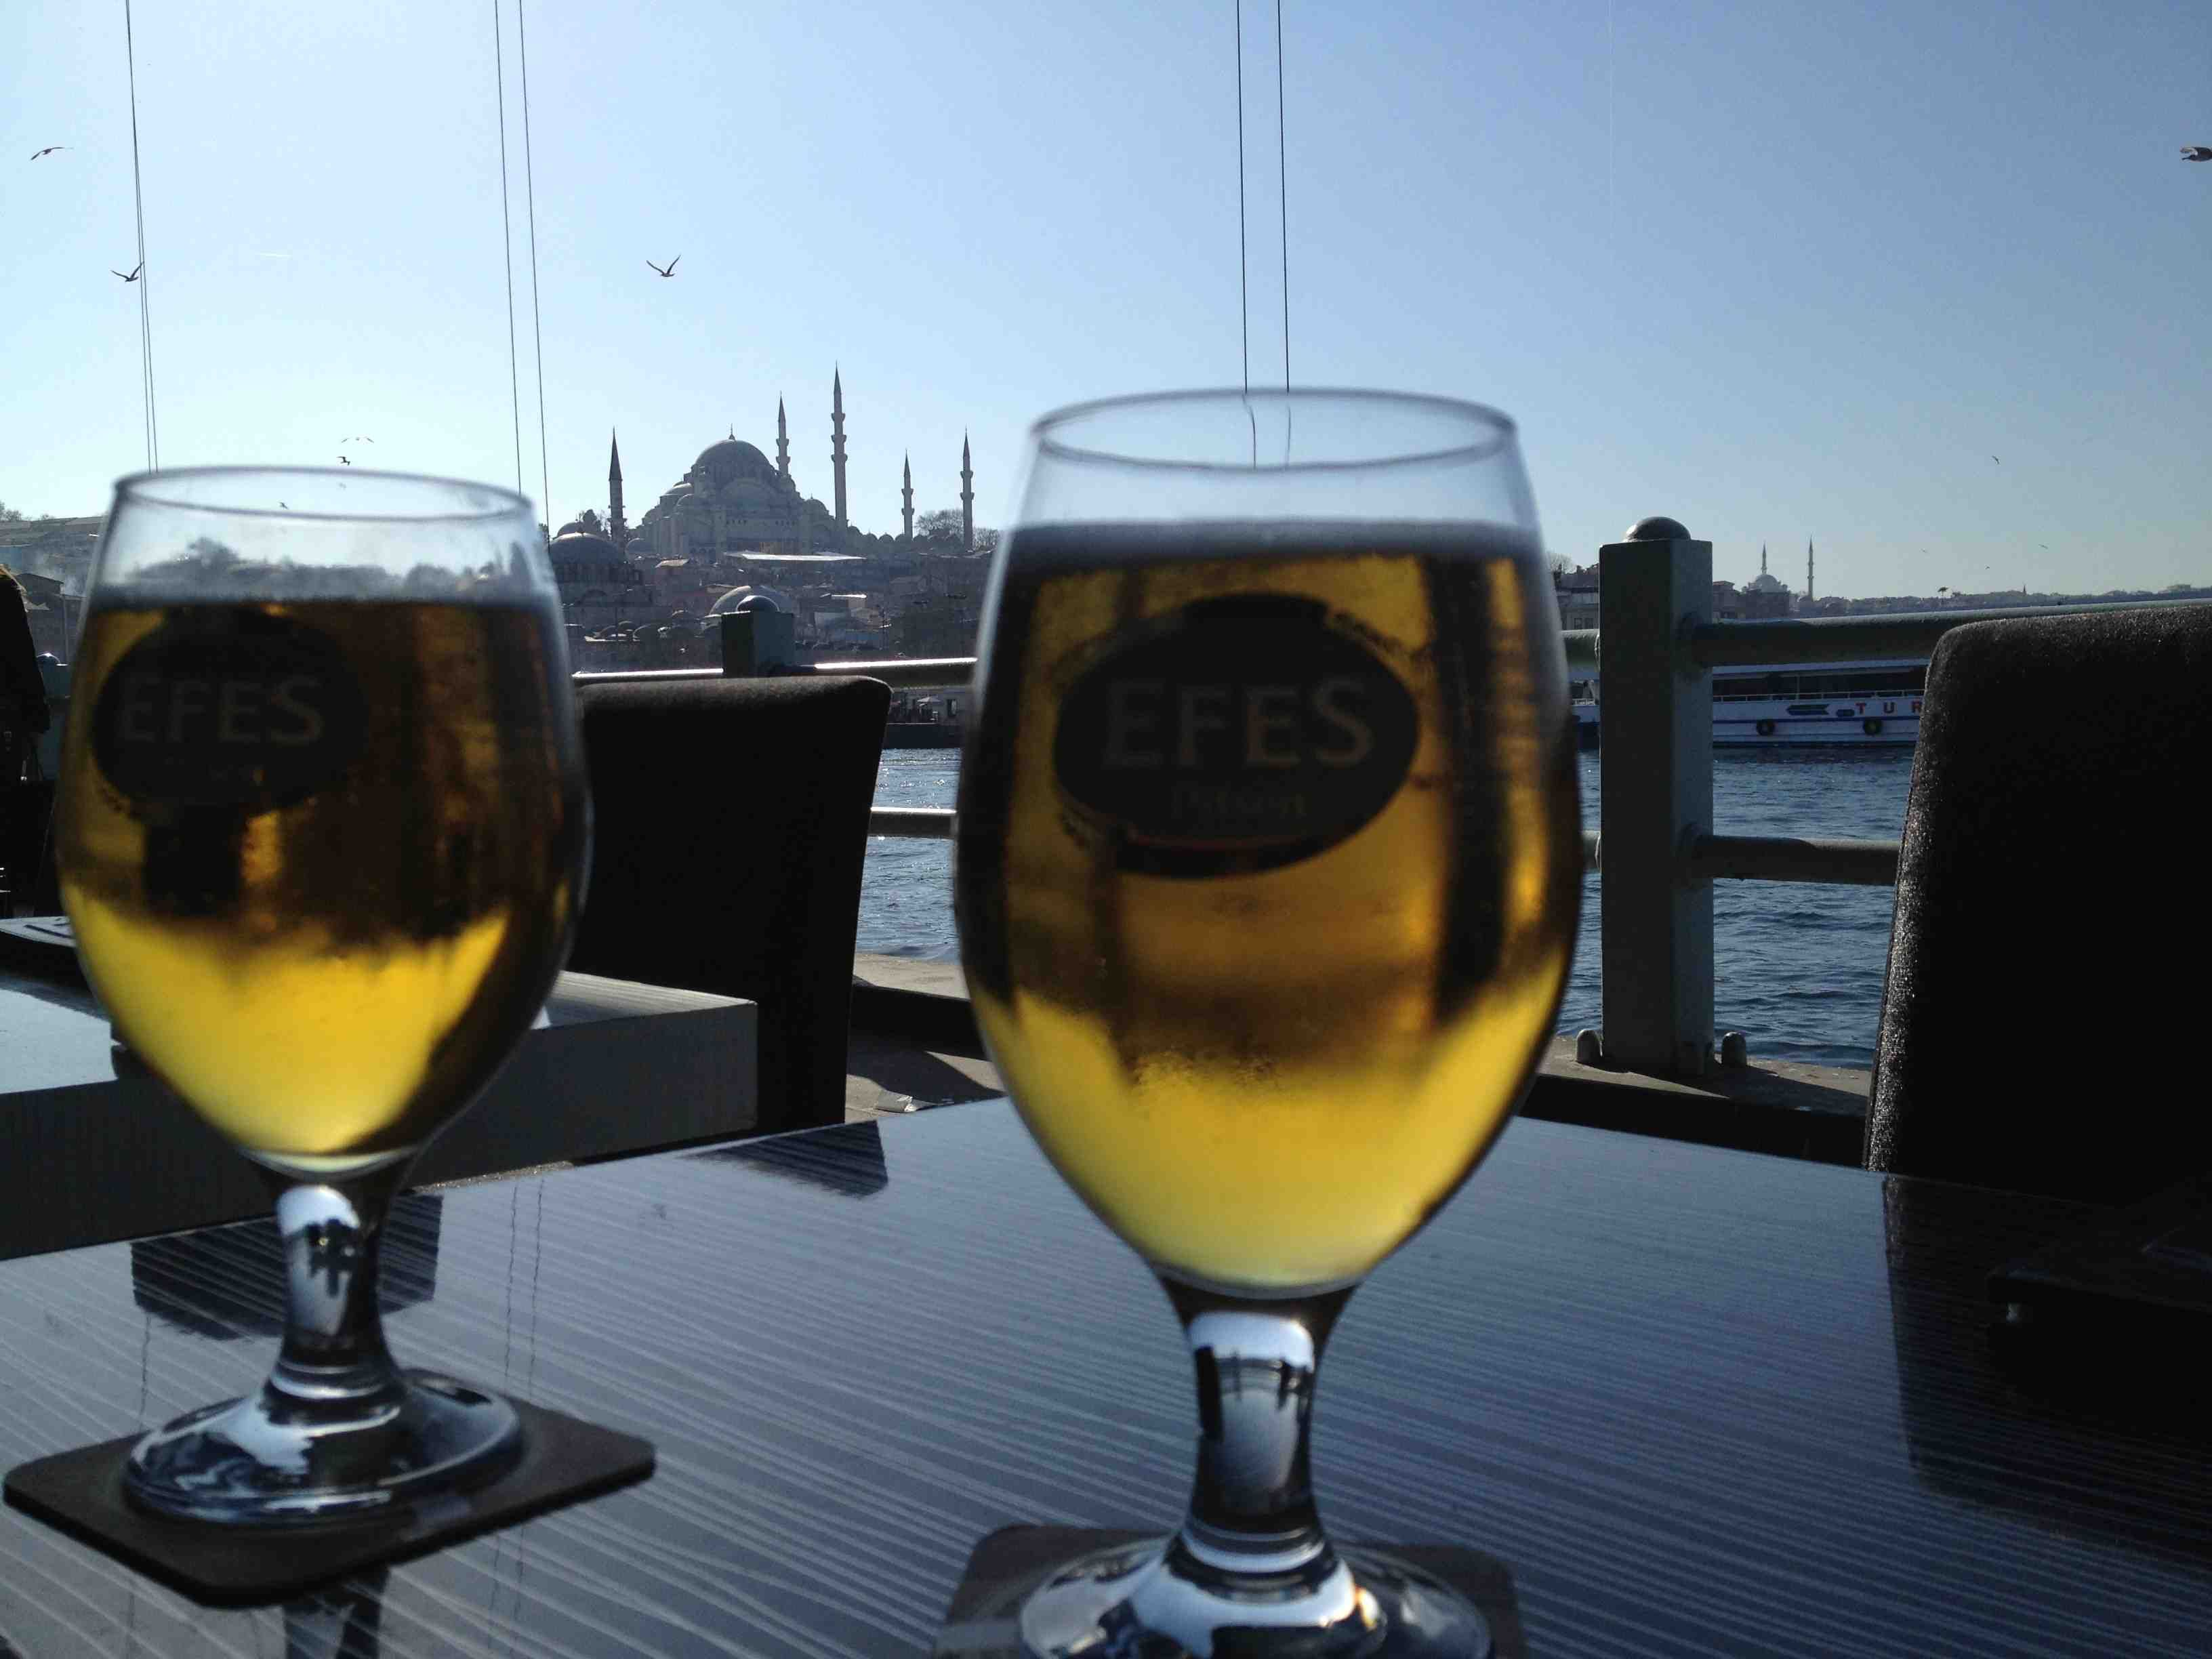 Having an Efes beer and Sultanahmet in the background